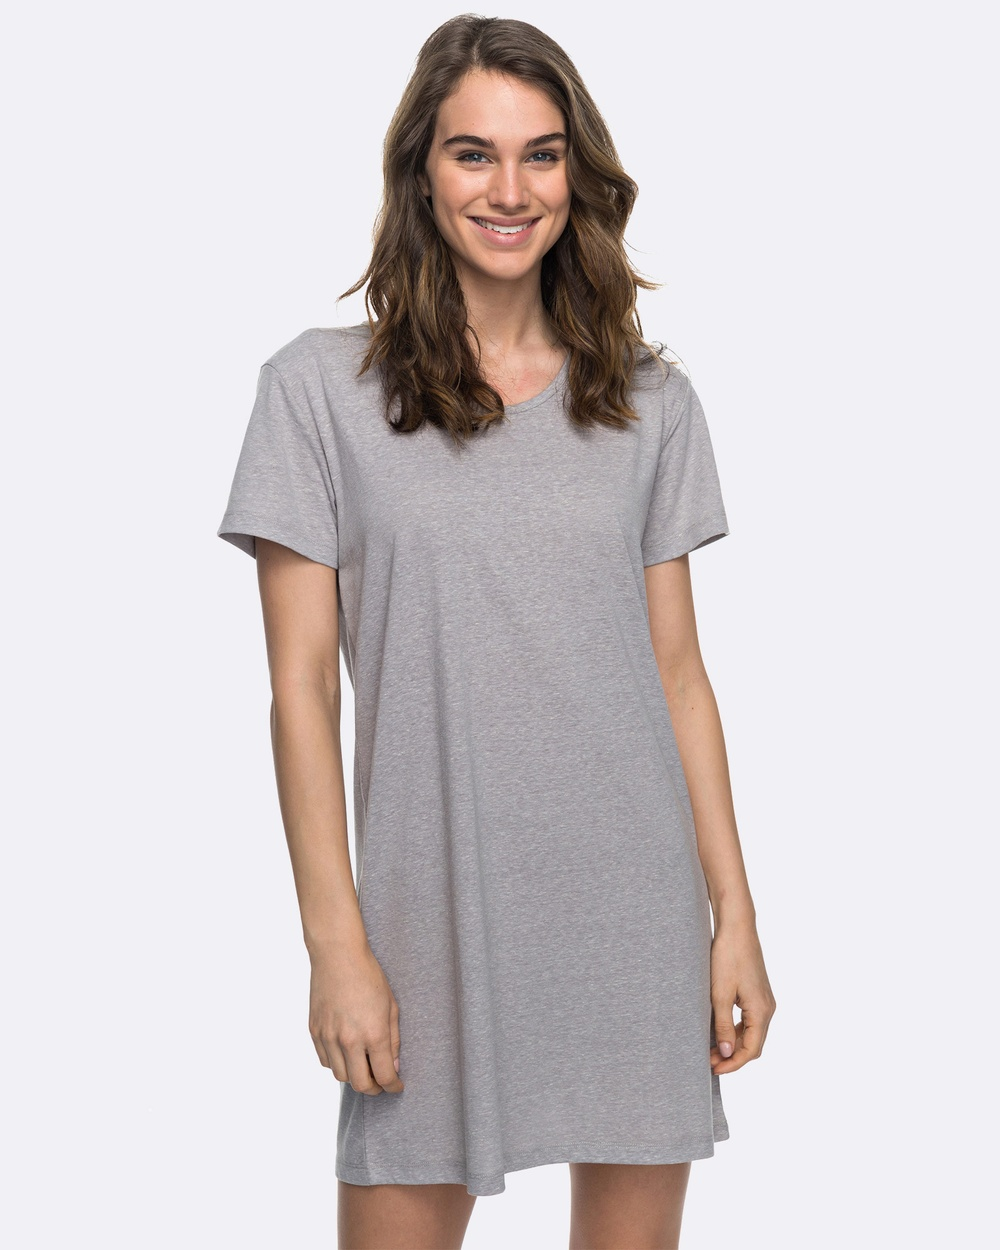 Roxy Womens Just Simple Solid T Shirt Dress Swimwear Heritage Heather Womens Just Simple Solid T Shirt Dress